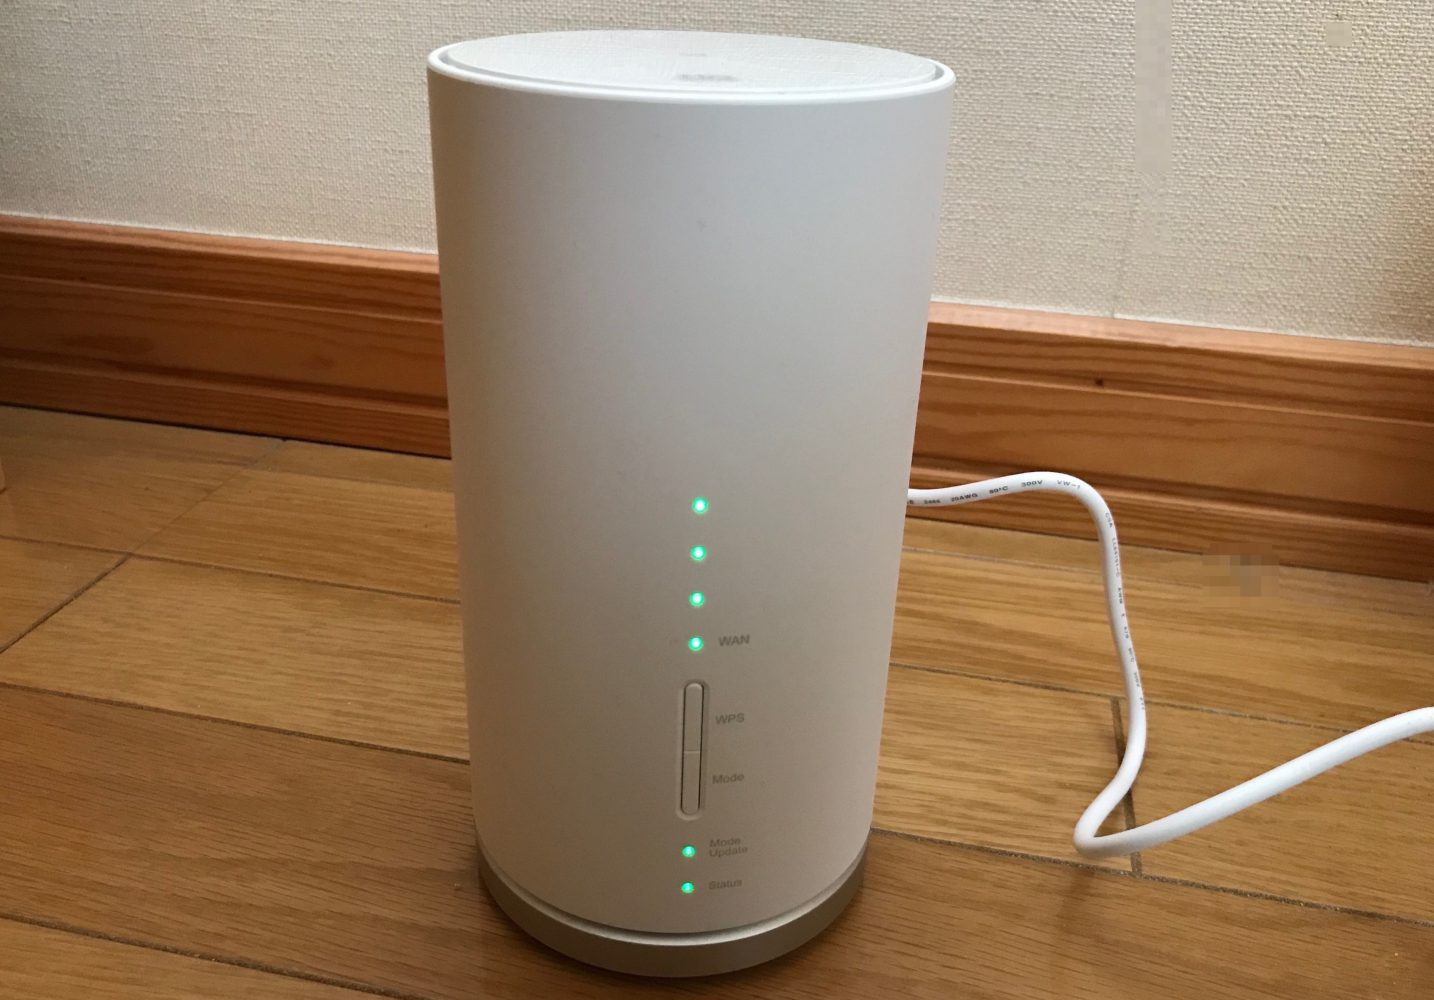 WiMAXホームルーターSpeed Wi-Fi HOME L01s開通!意外に速いけど…